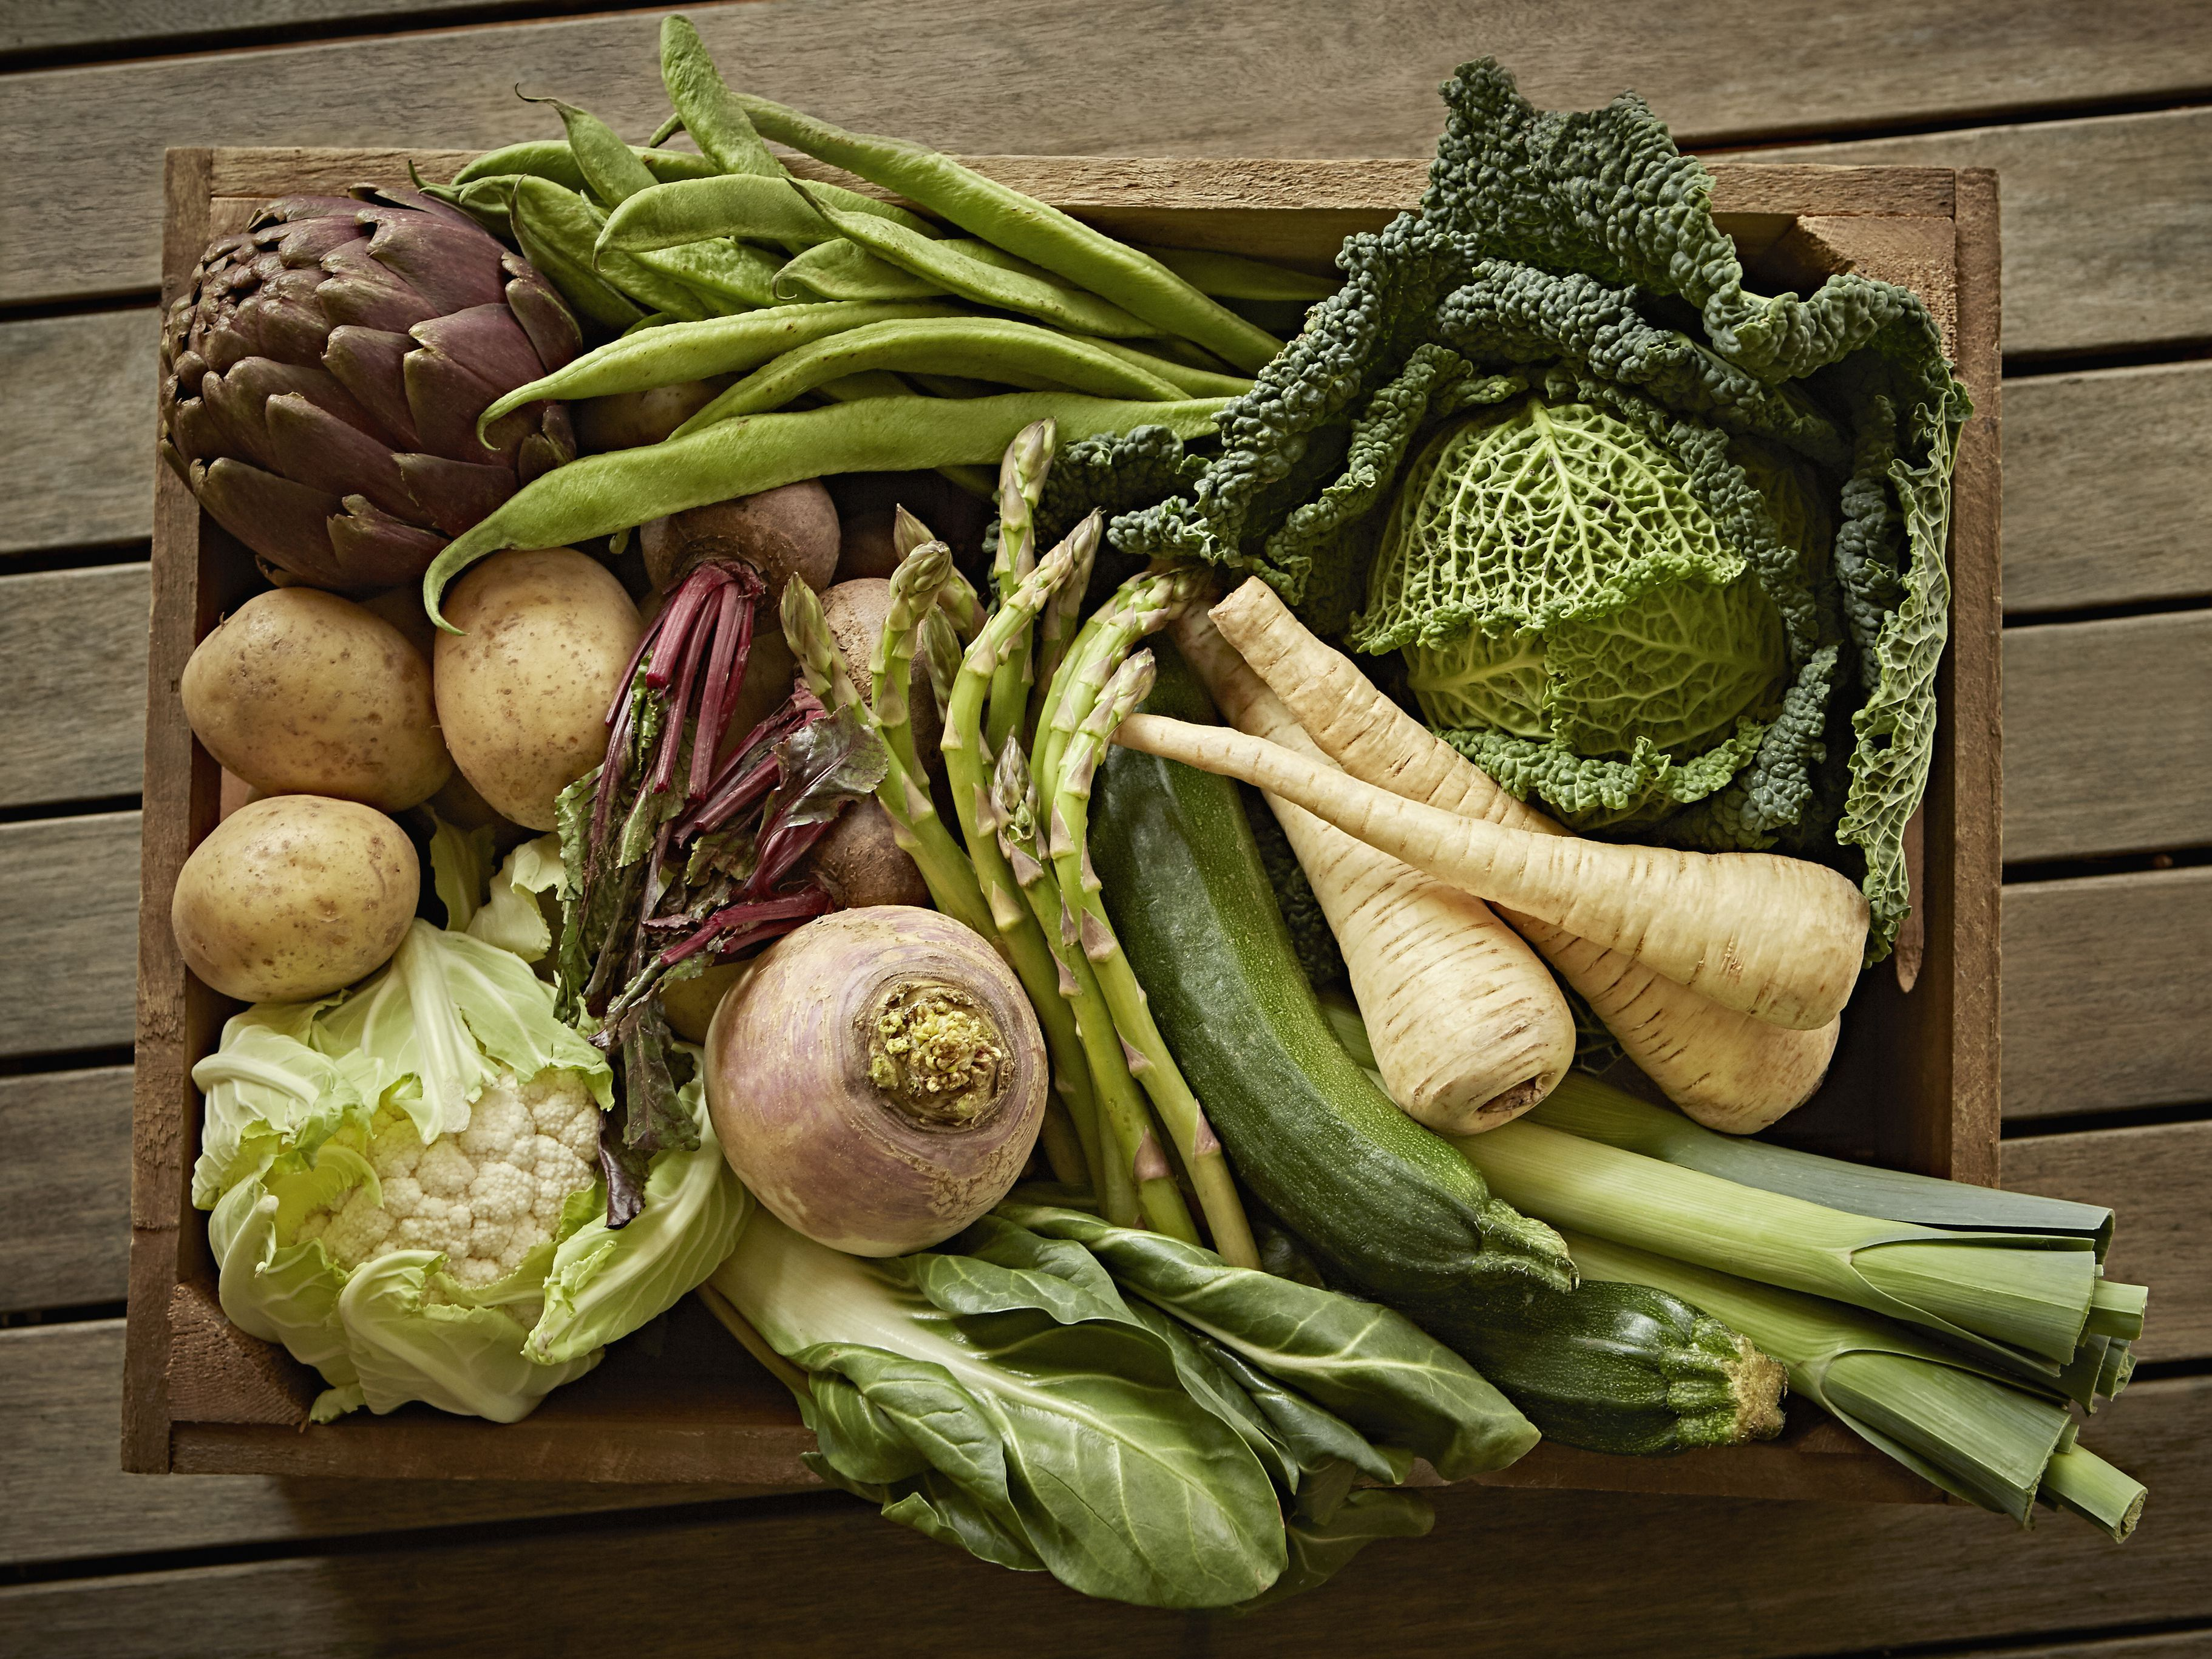 Vegetable harvest variety in a wood crate